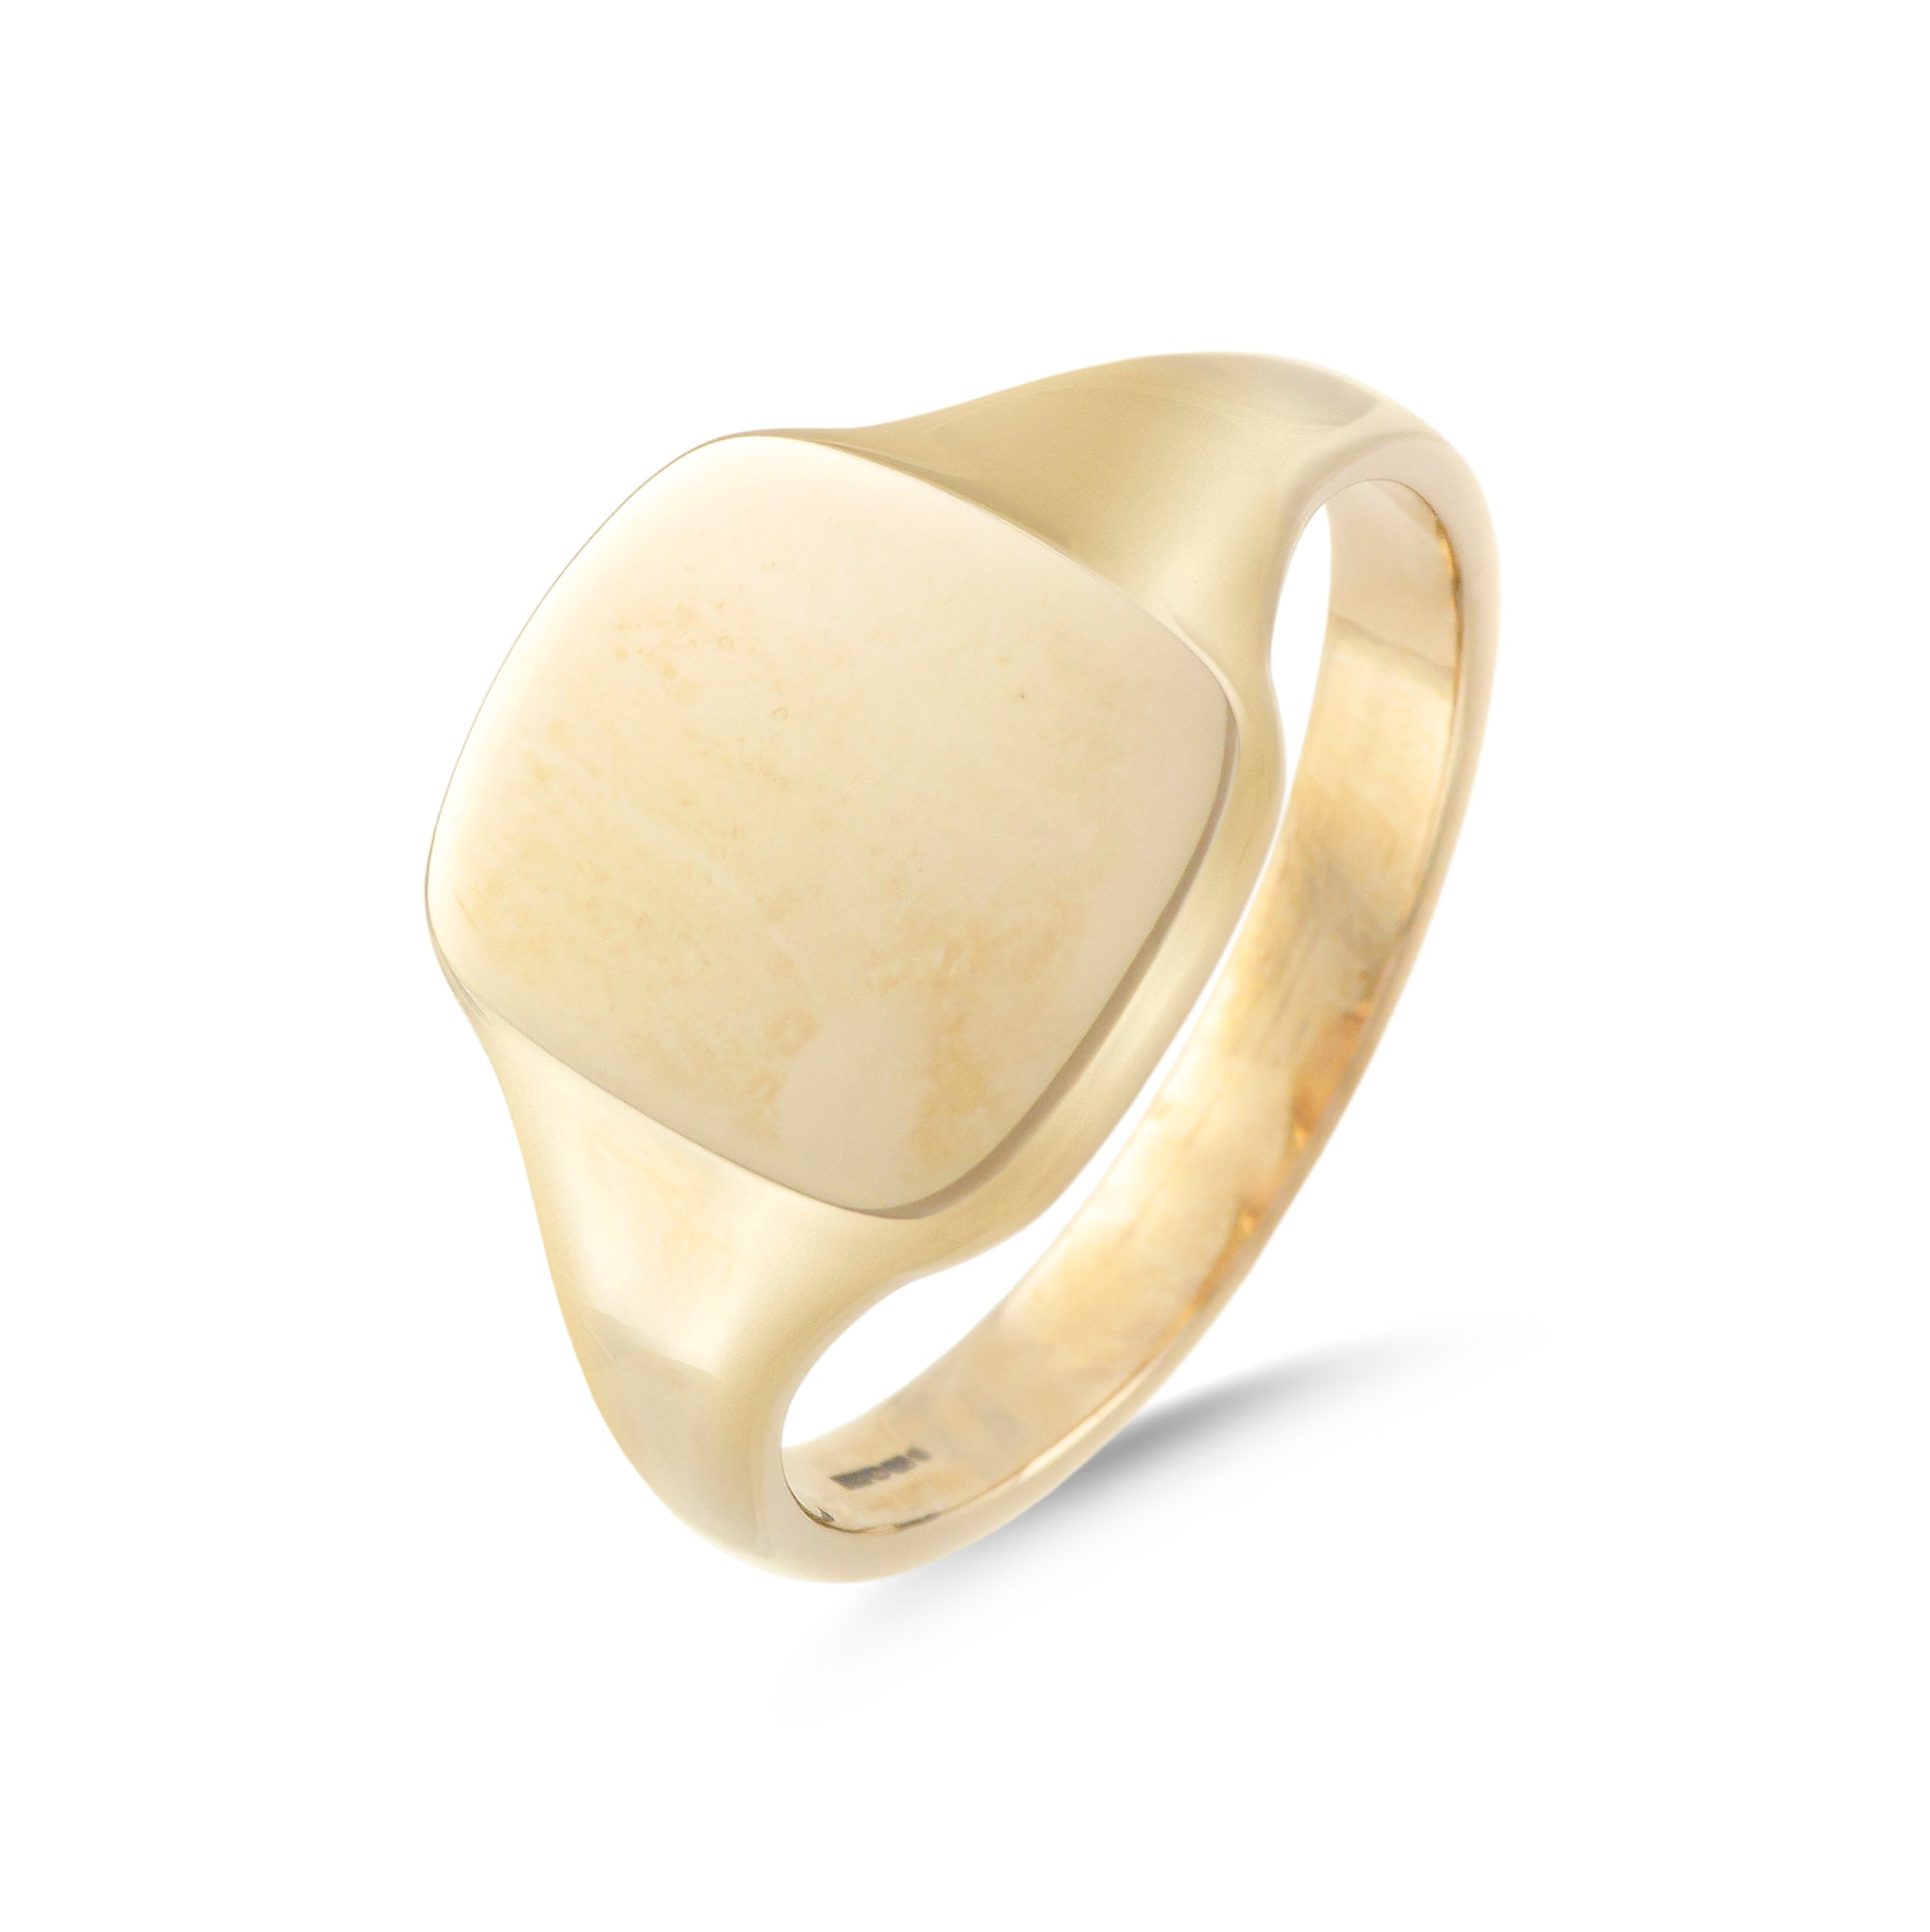 9ct Yellow Gold Cushion Signet Ring 15mm x 13mm